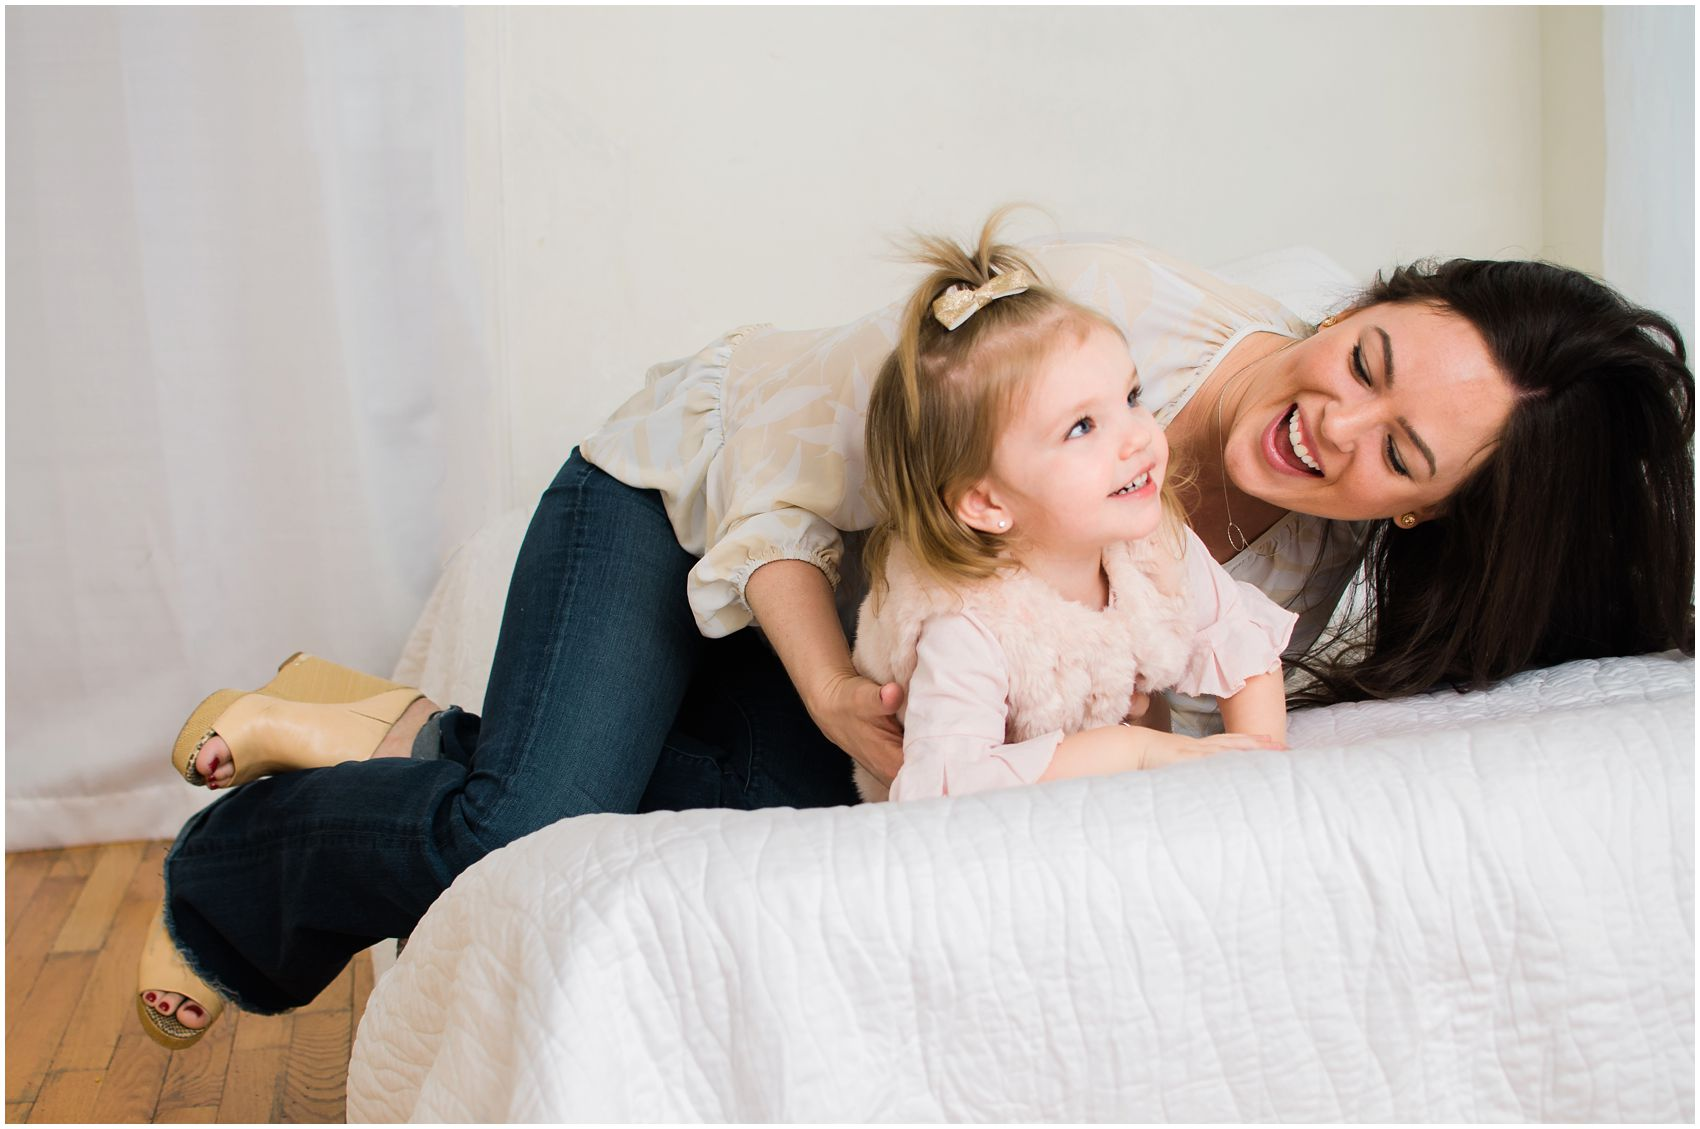 mom and little girl having fun on bed